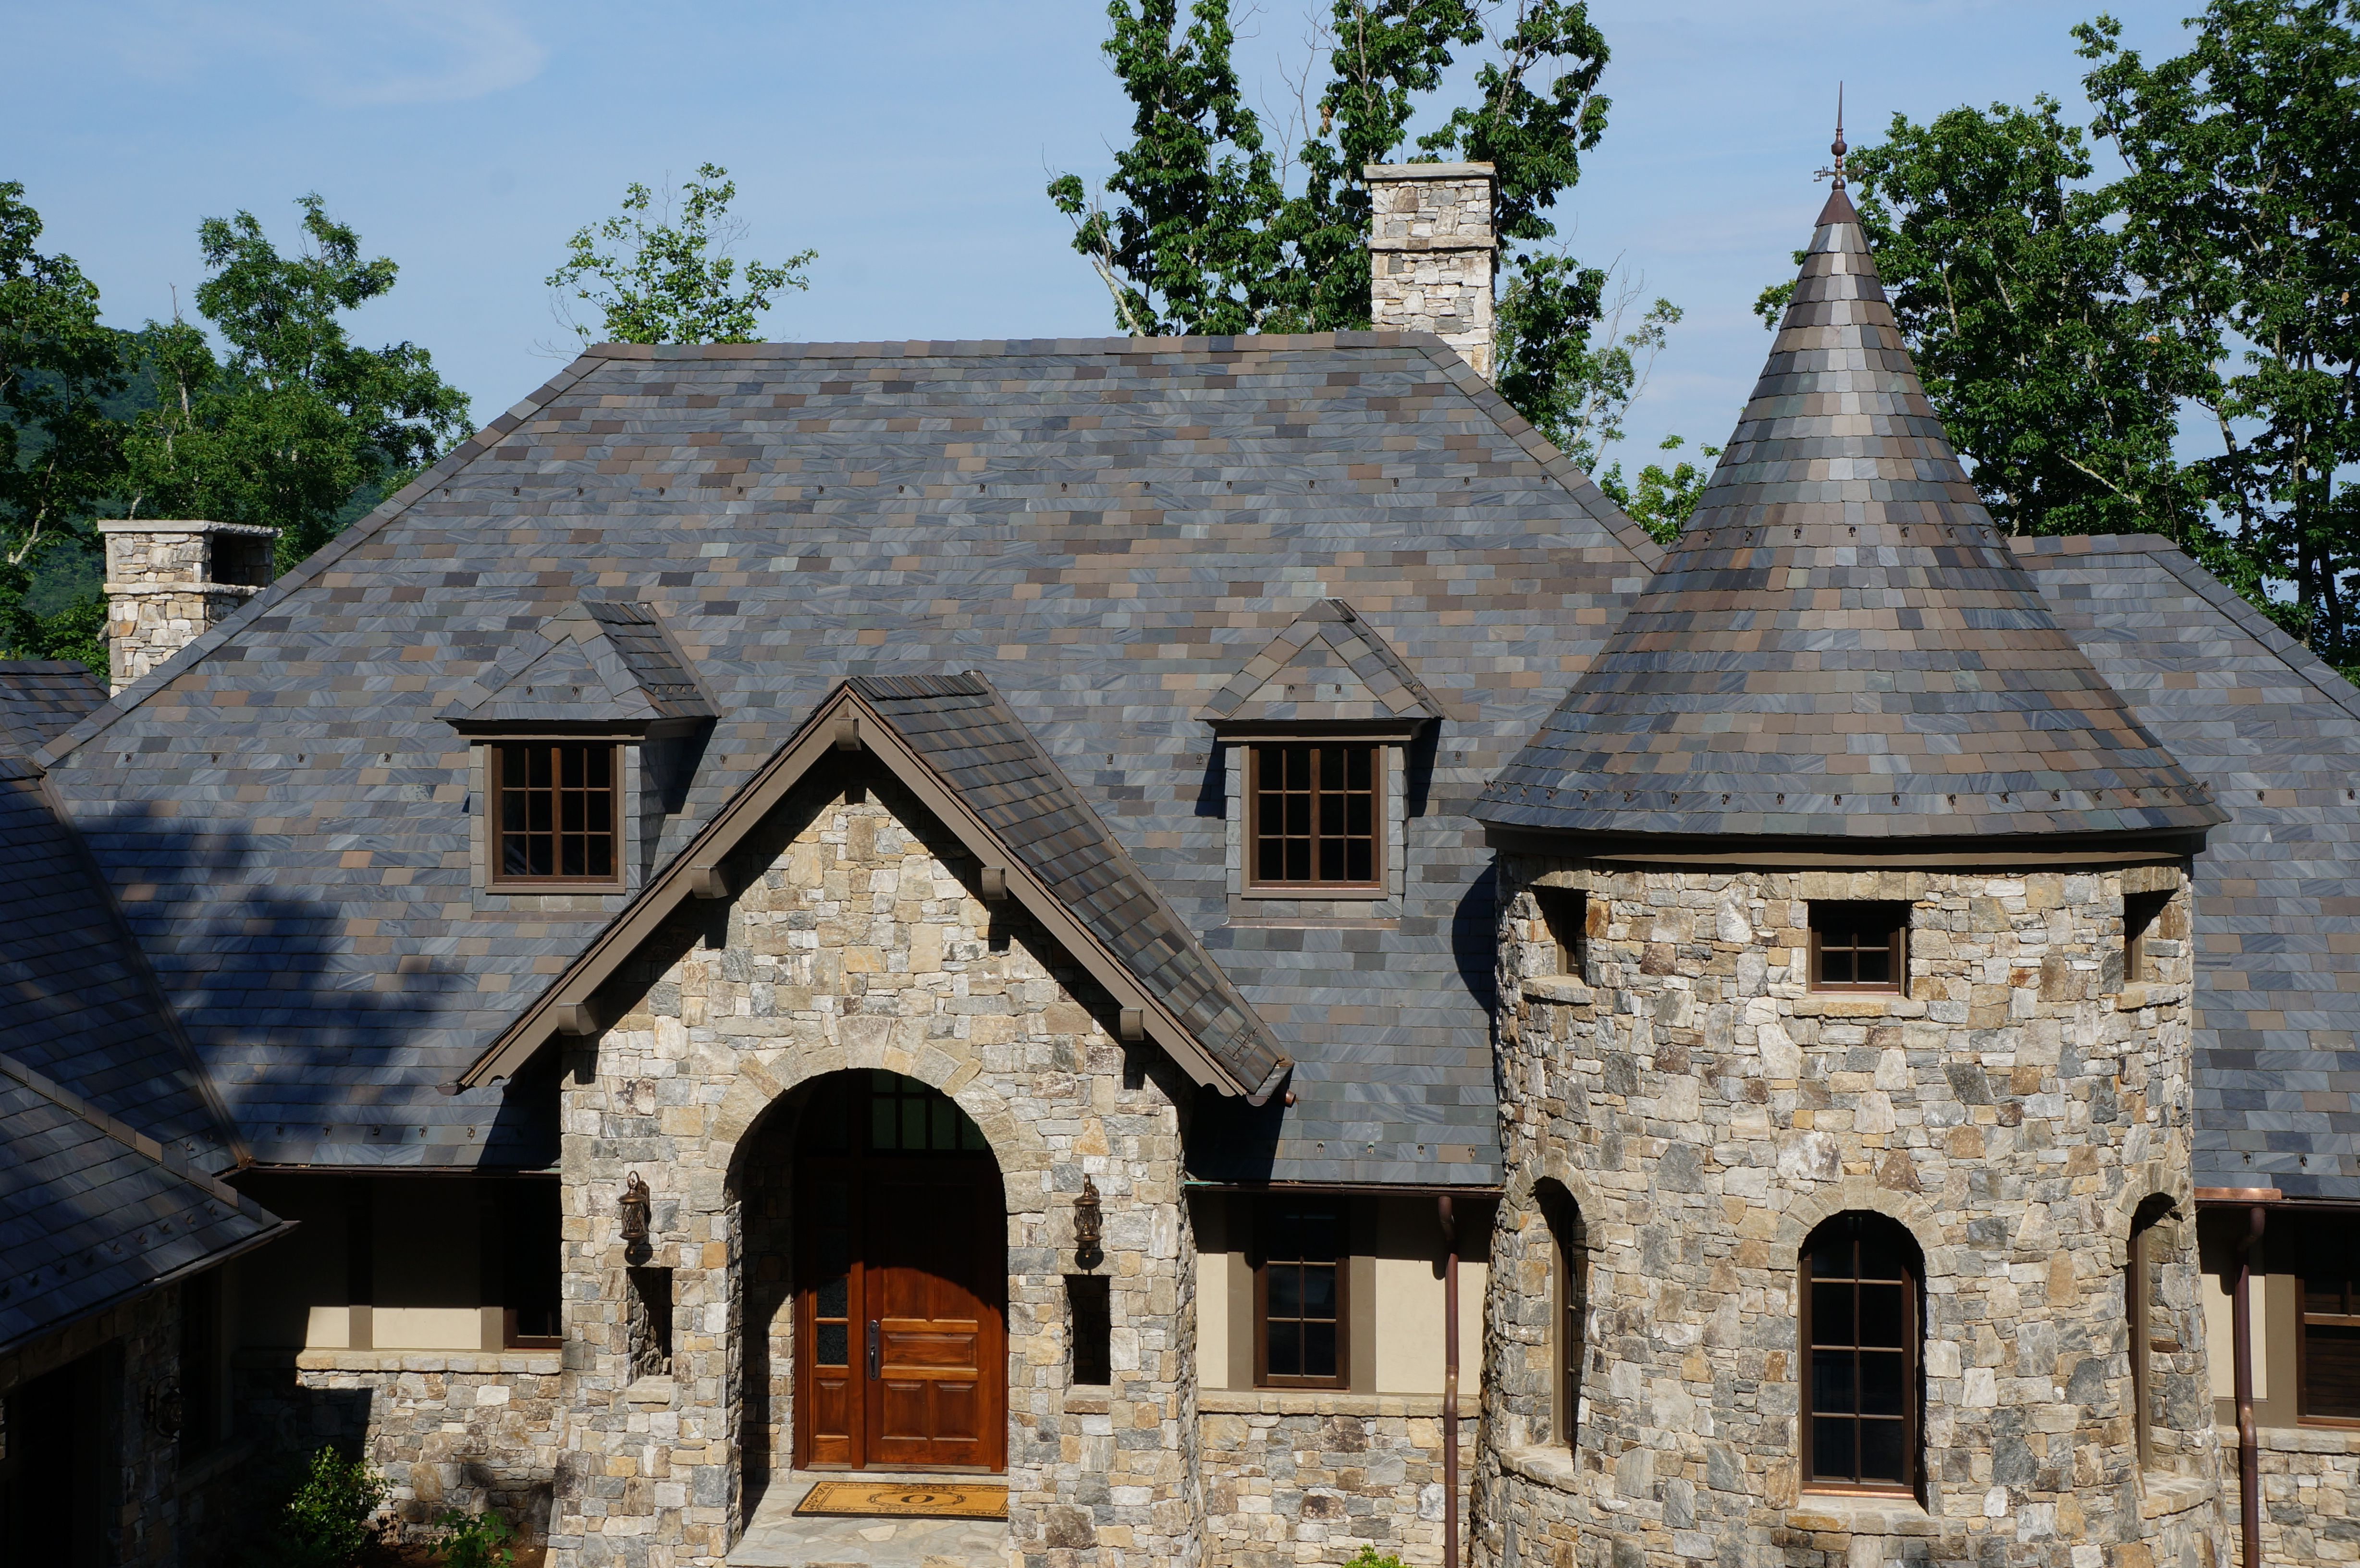 South Carolina Exterior Repairs Dlv Roof Roofing Contractor Roofingcontractor Chs Charleston Roofing Contractors Roofing Roofer